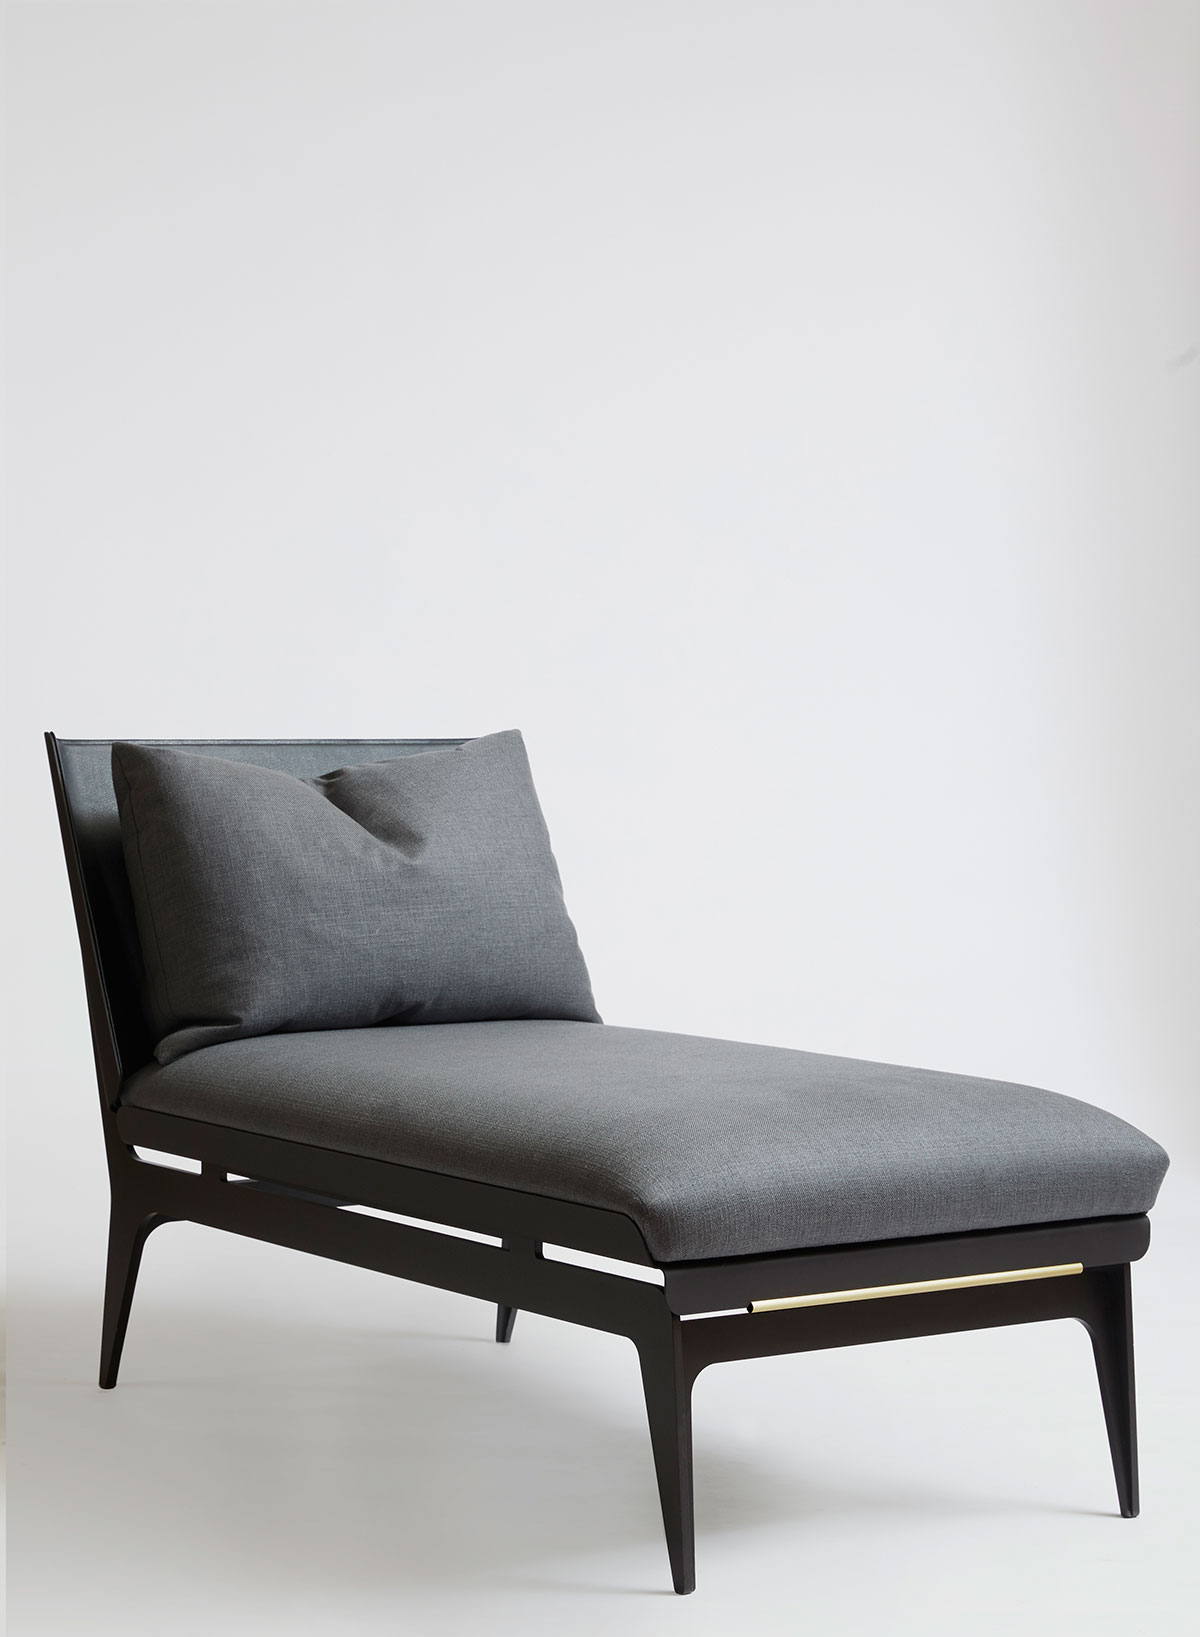 Gabriel scott boudoir chaise longue1